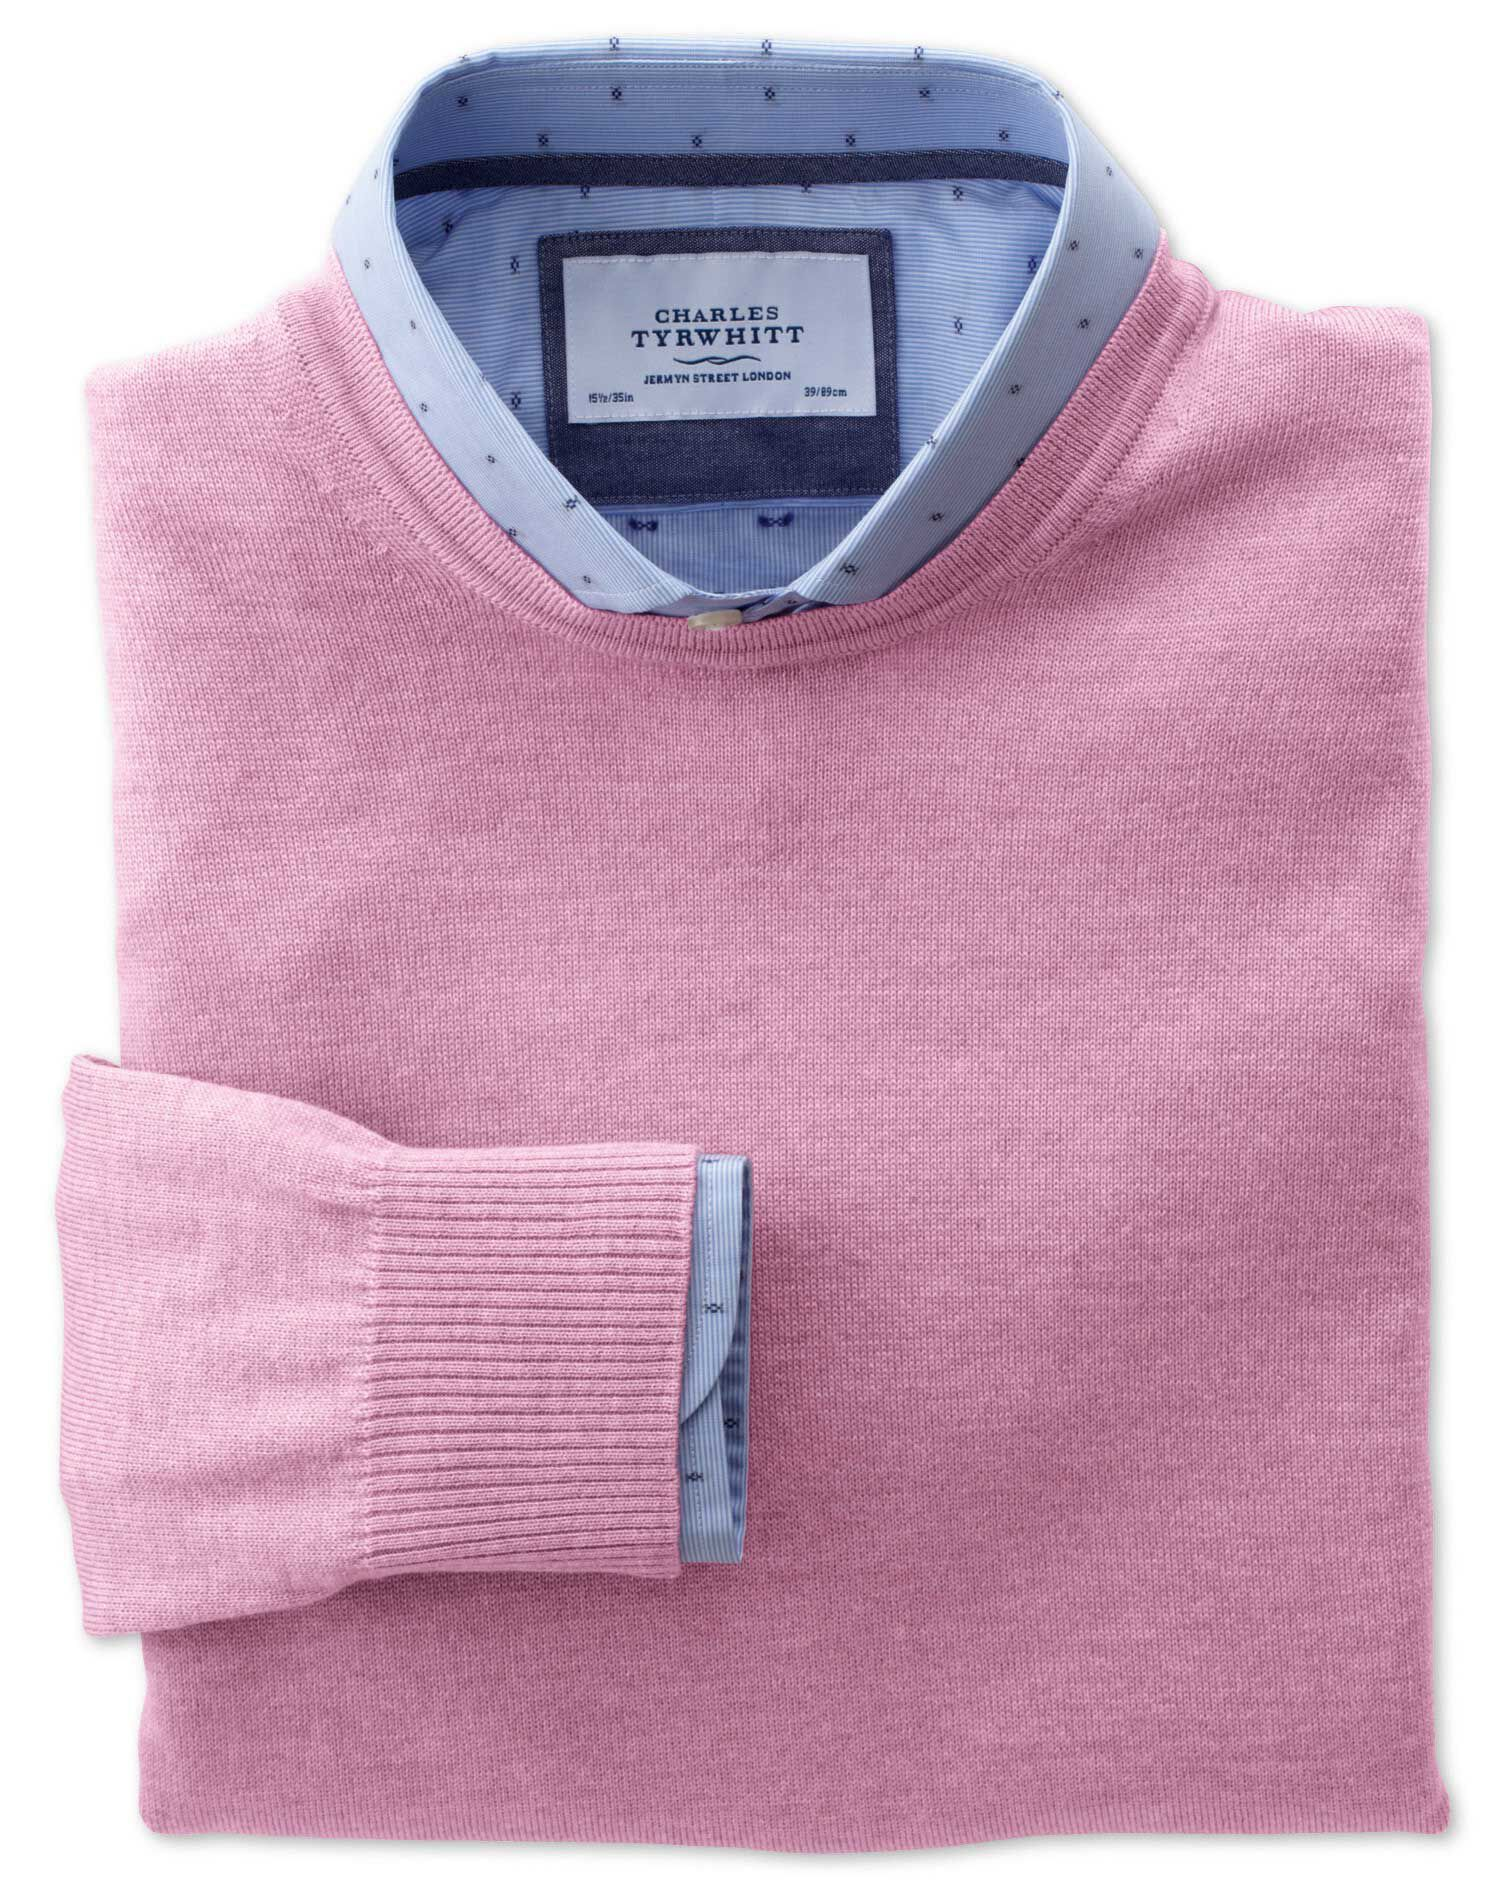 Light Pink Merino Wool Crew Neck Jumper Size Medium by Charles Tyrwhitt